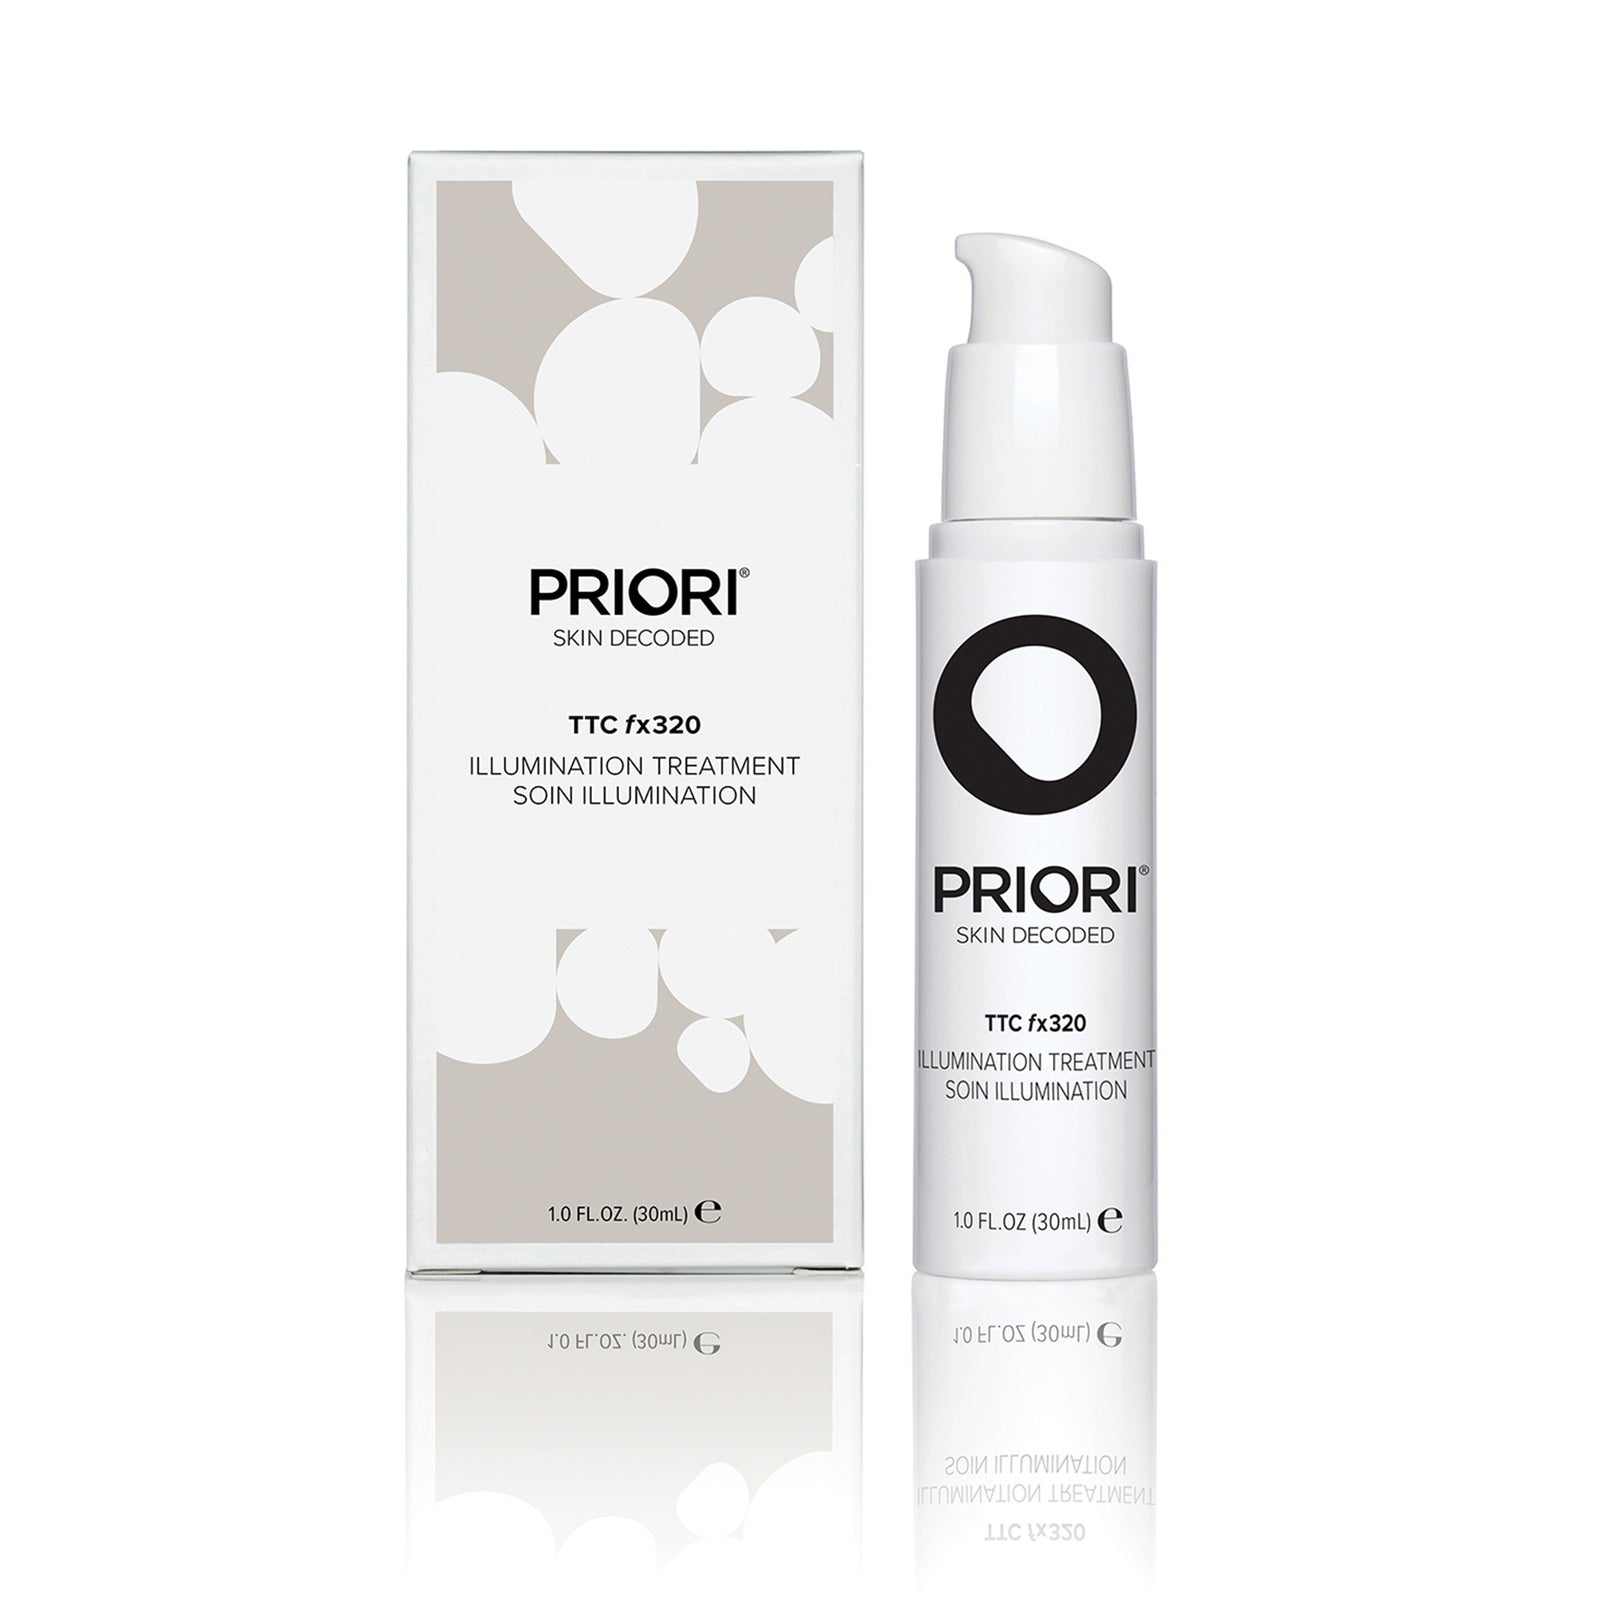 PRIORI | TTC fx320 Illumination Treatment